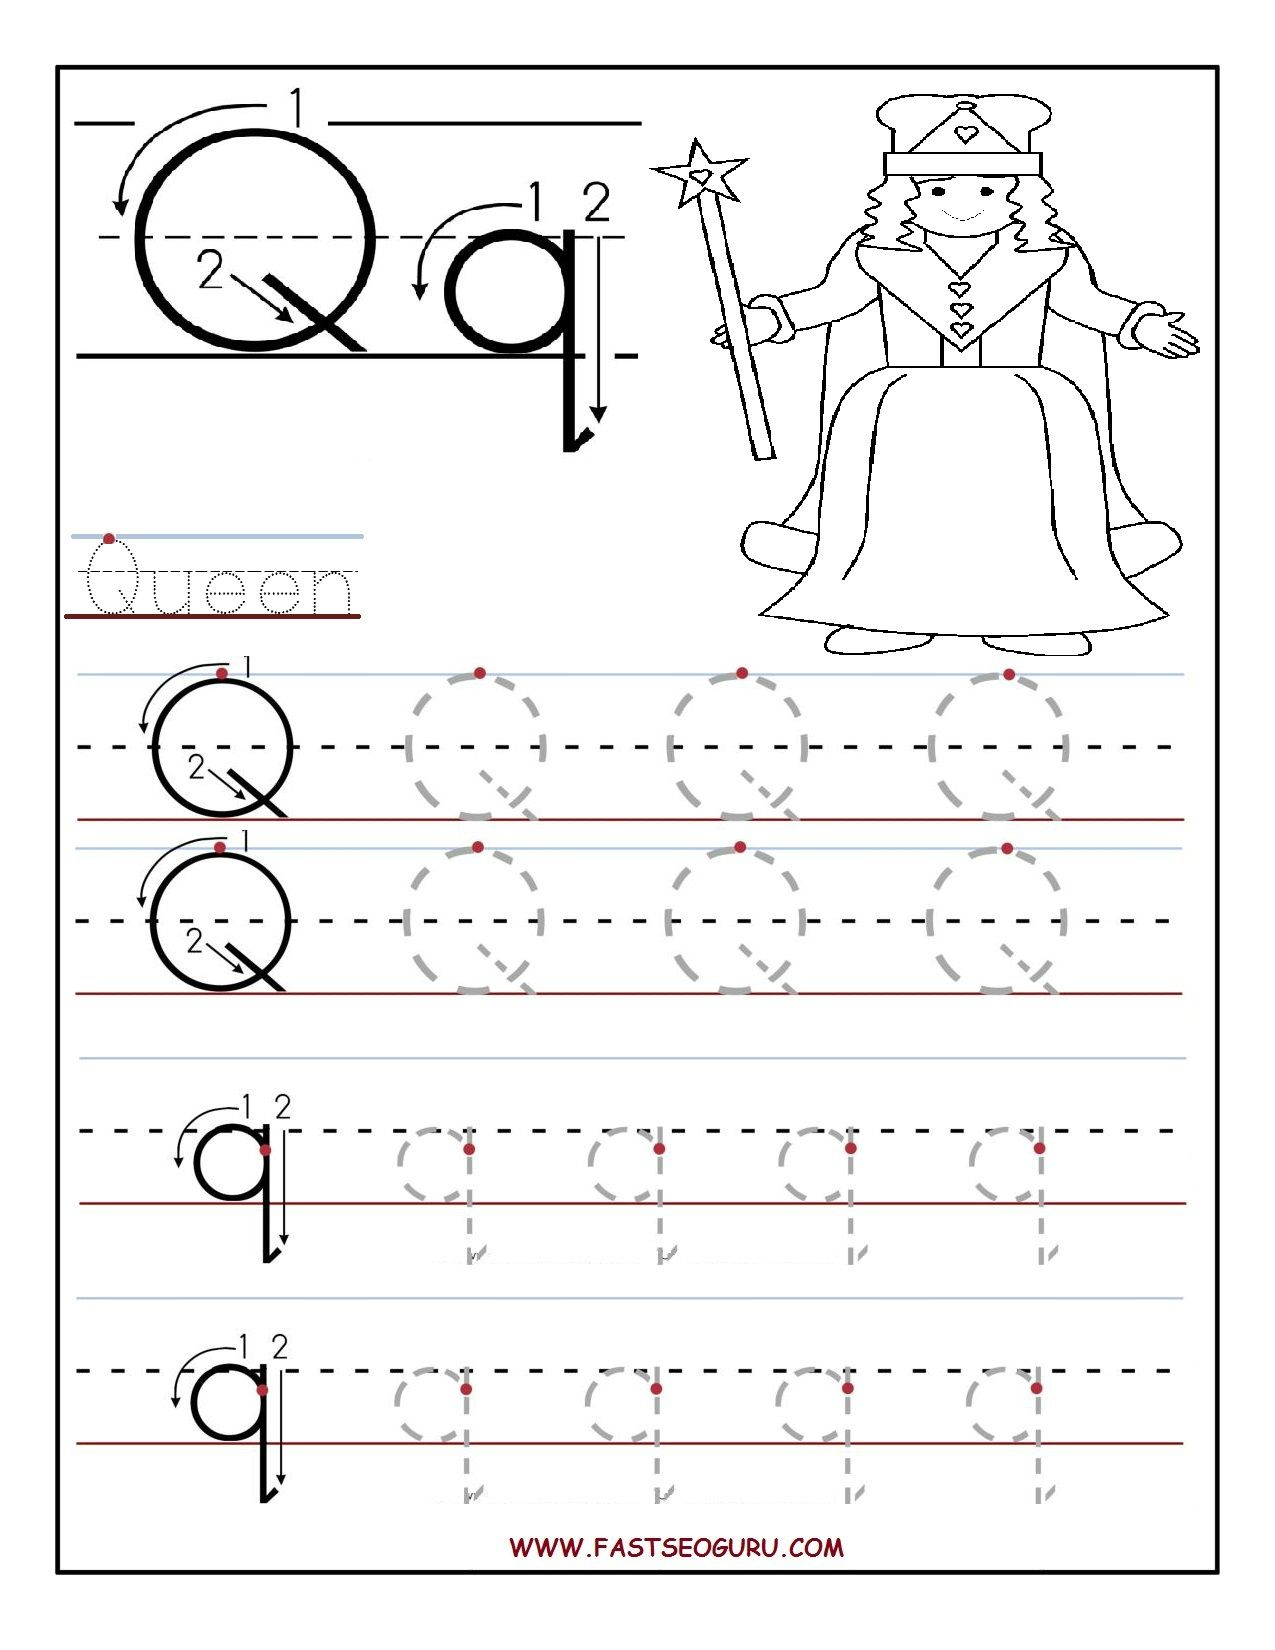 Printable letter q tracing worksheets for preschool word work printable letter q tracing worksheets for preschool spiritdancerdesigns Images